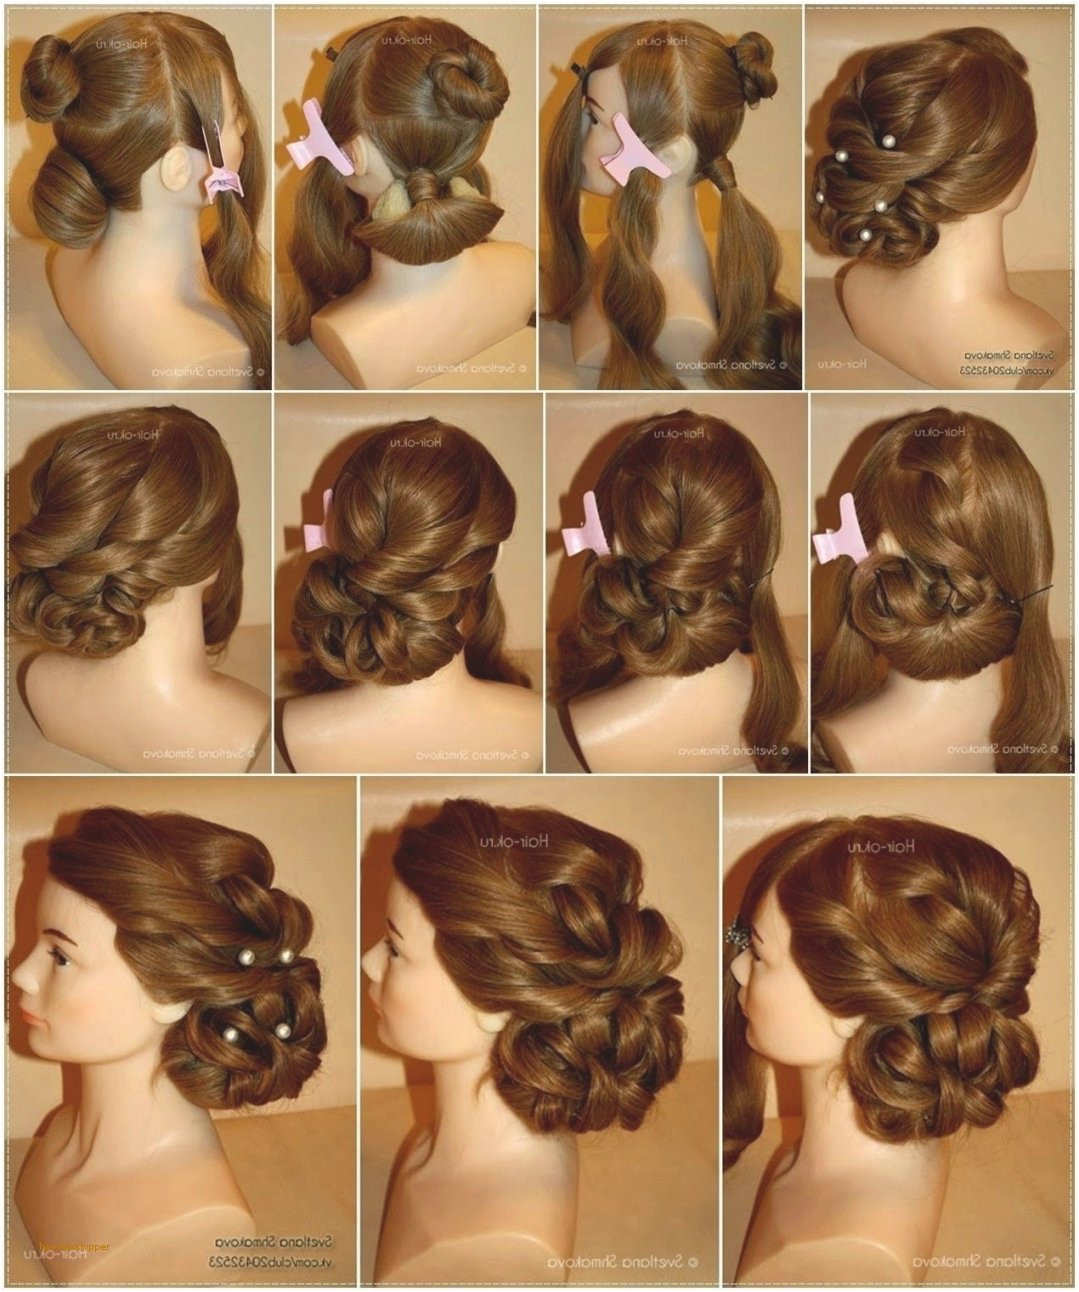 Easy Hairstyles for Short Hair to Do at Home Dailymotion Pretty Good Easy Hairstyles to Do at Home Step by Step Dailymotion